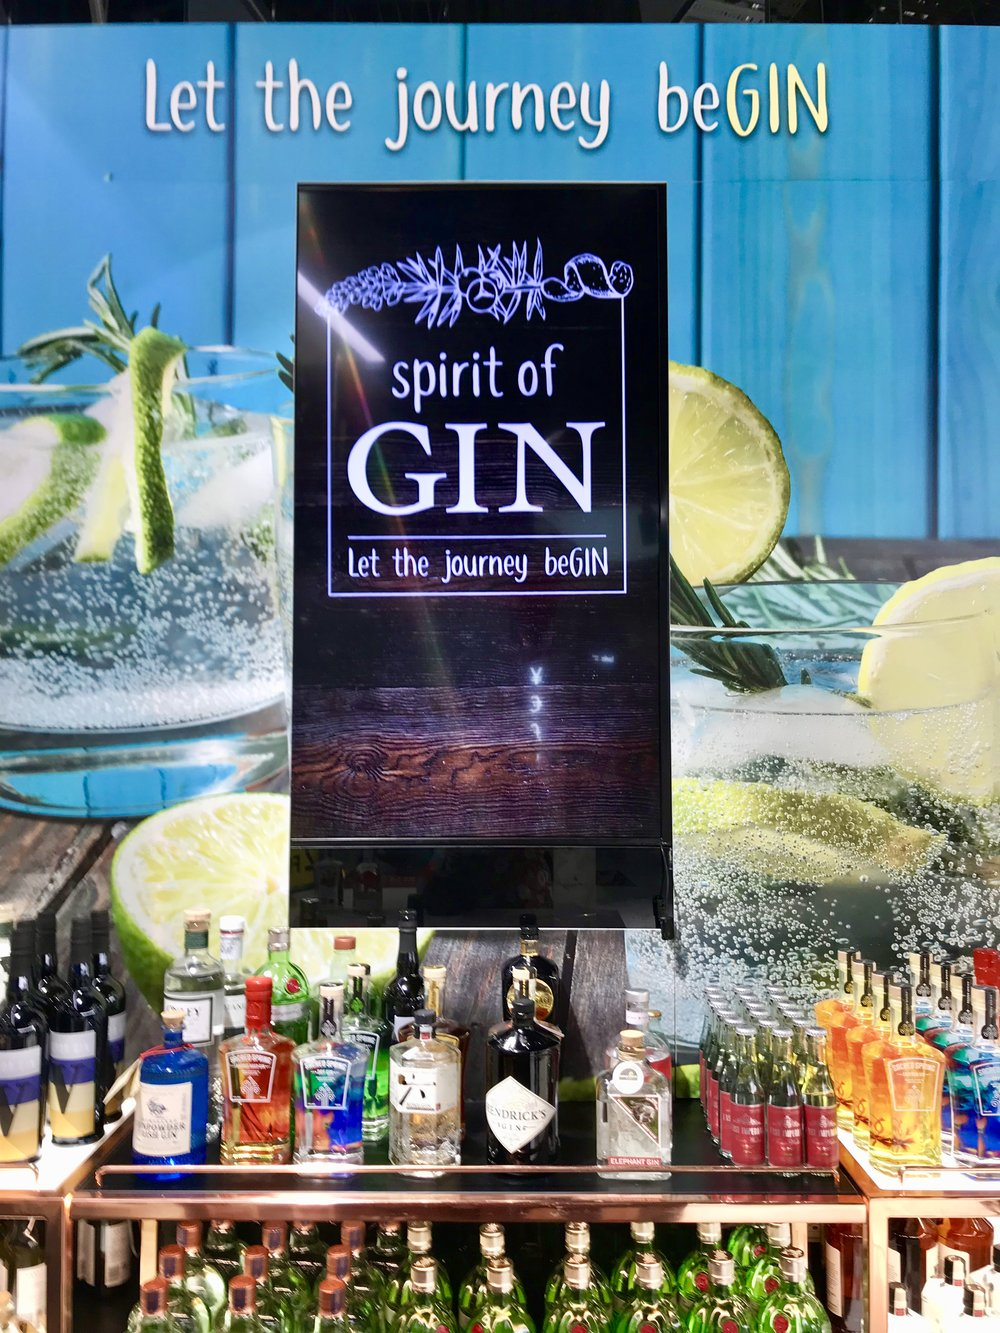 Let the journey be gin